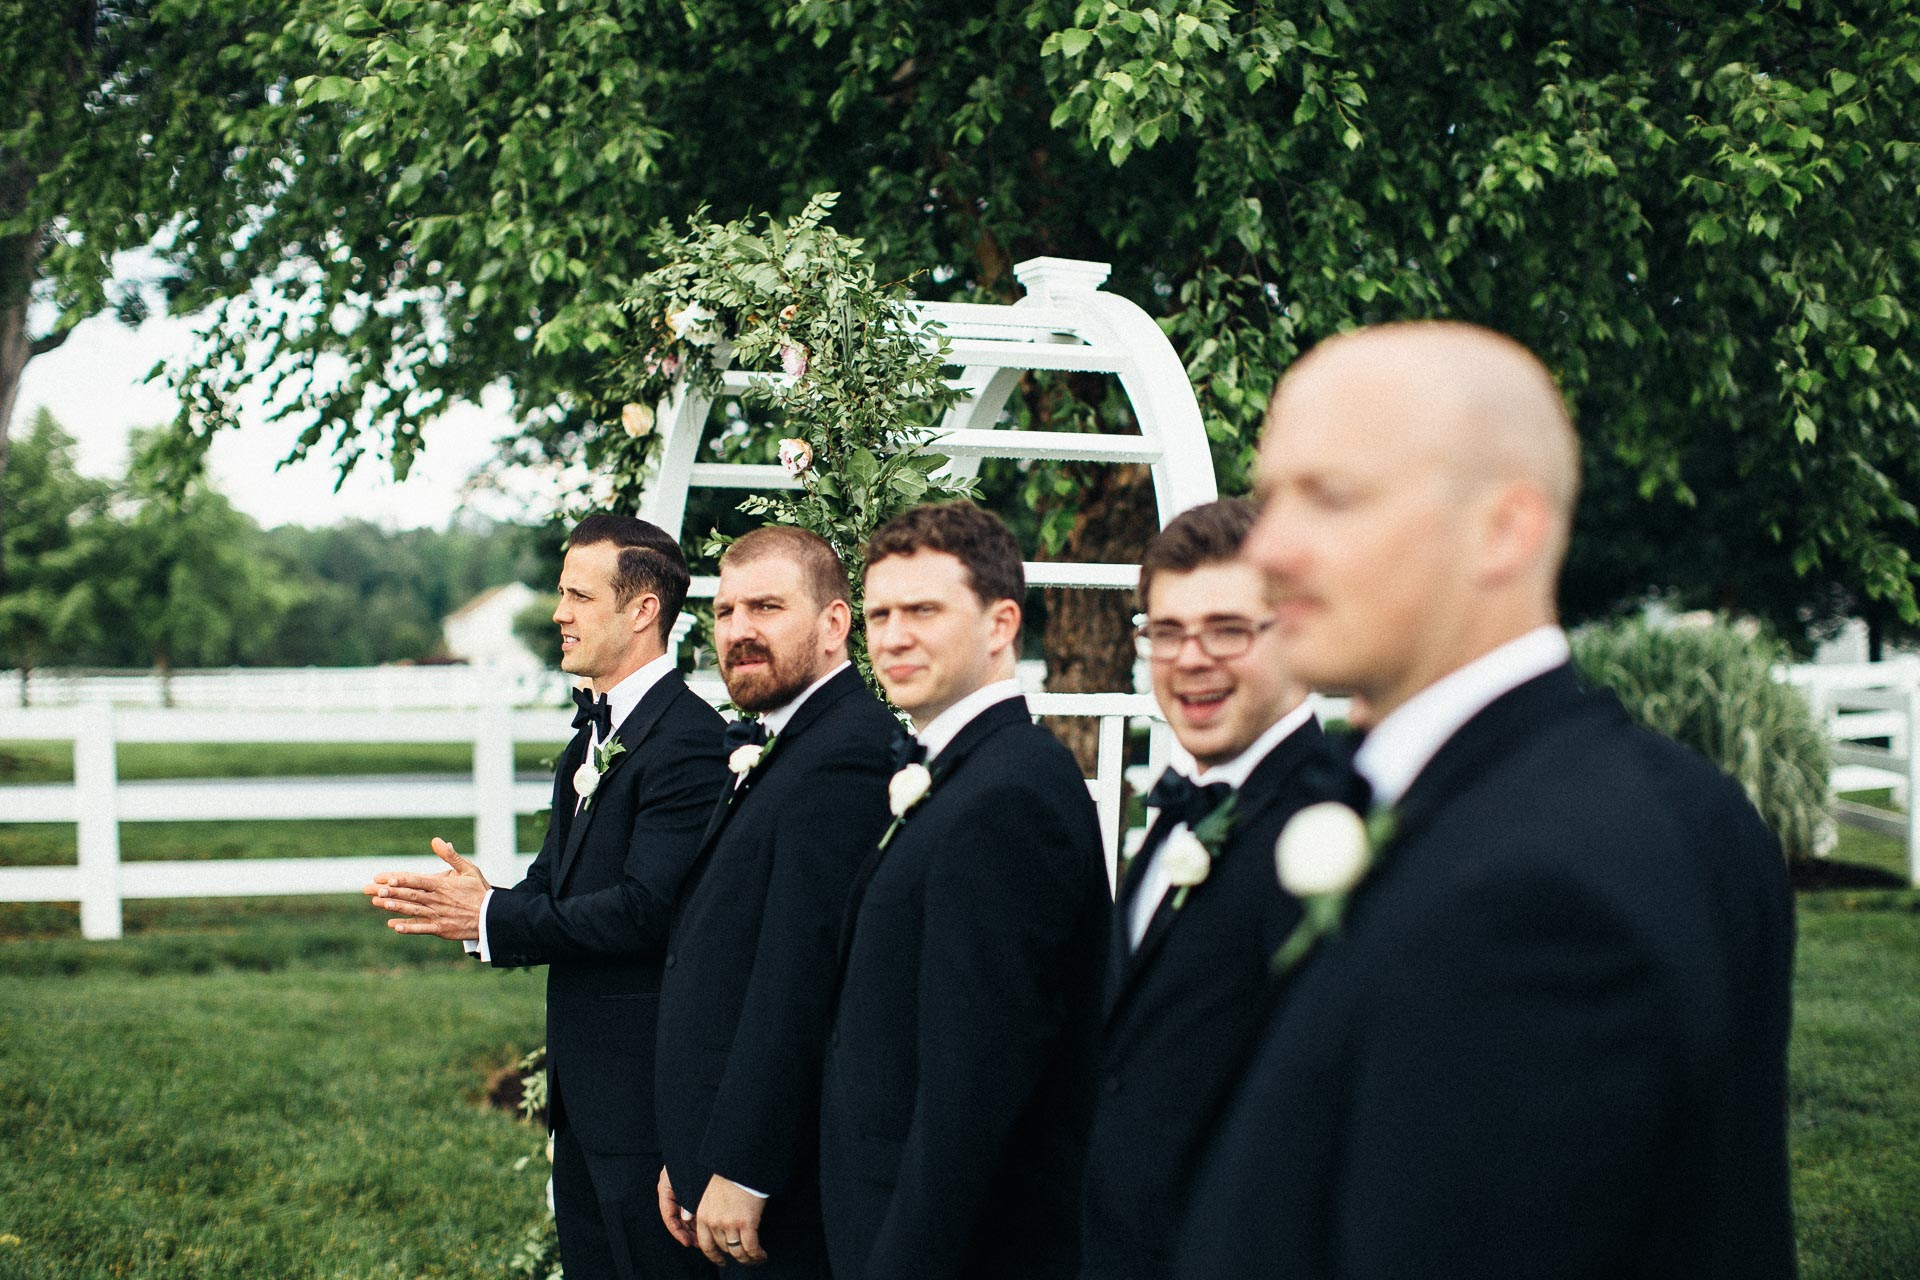 Shawna_Josh_Wedding_Easton_Maryland_JeanLaurentGaudy_057